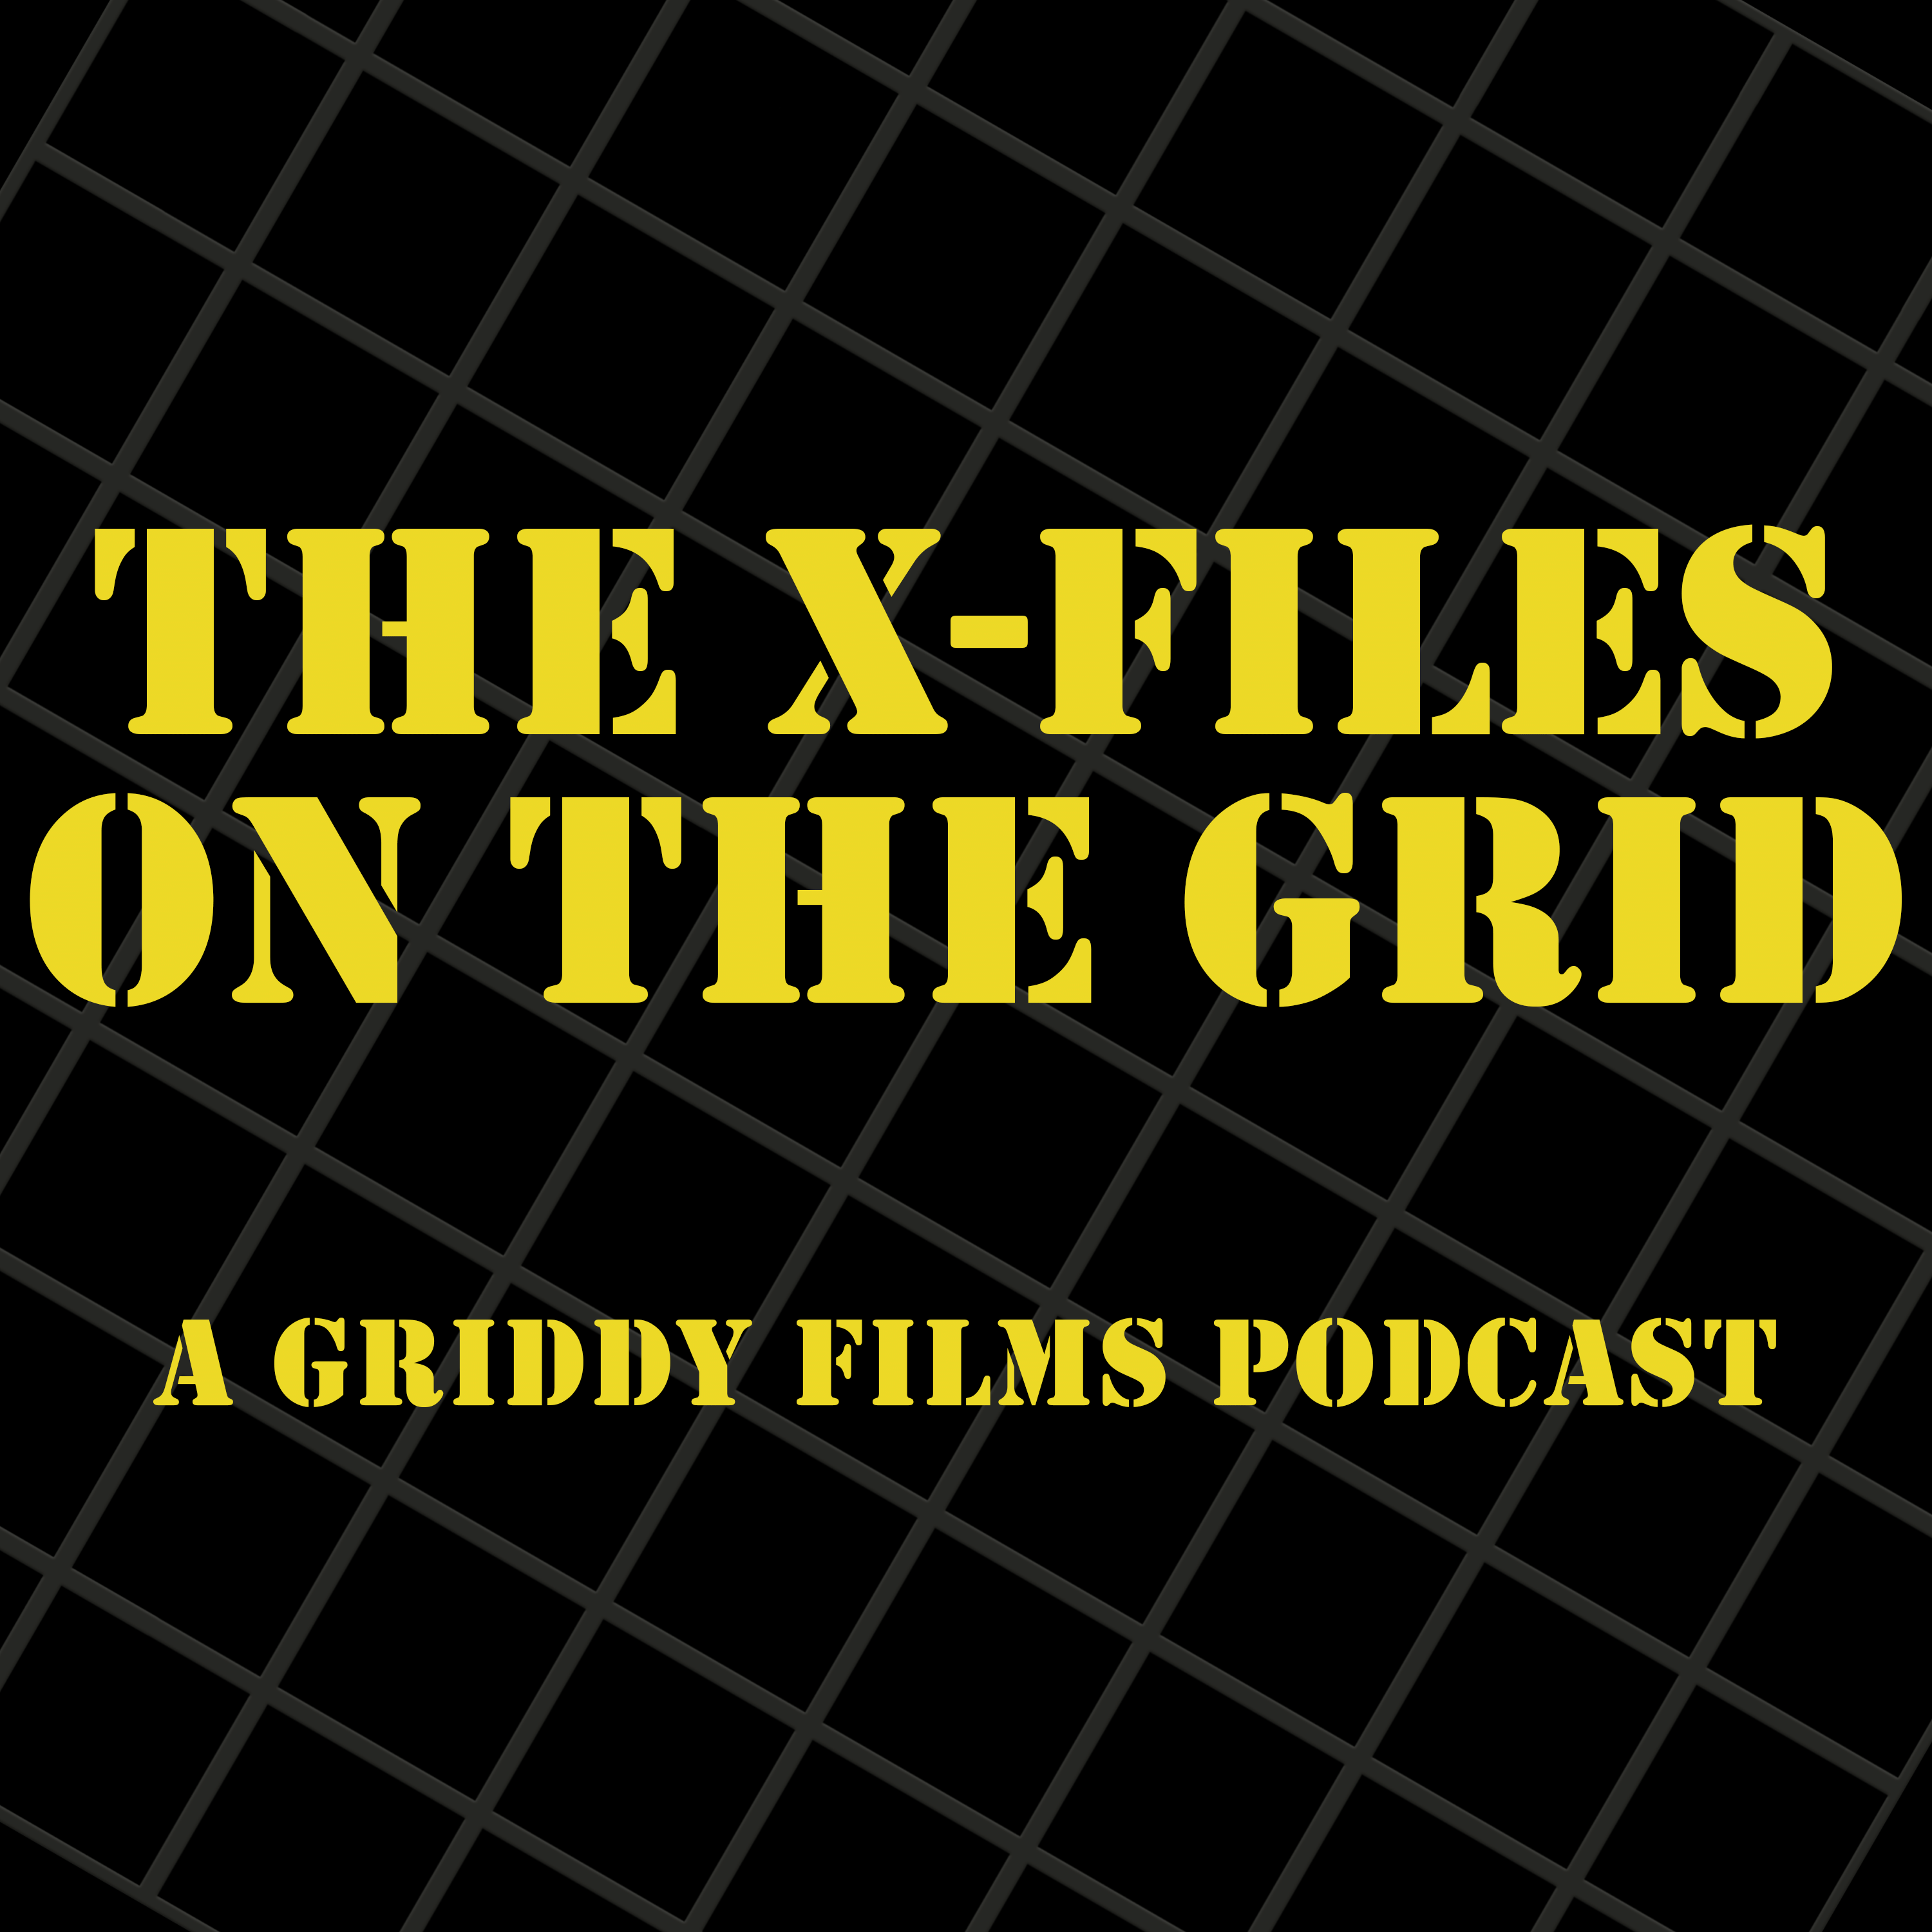 The X-Files on the Grid